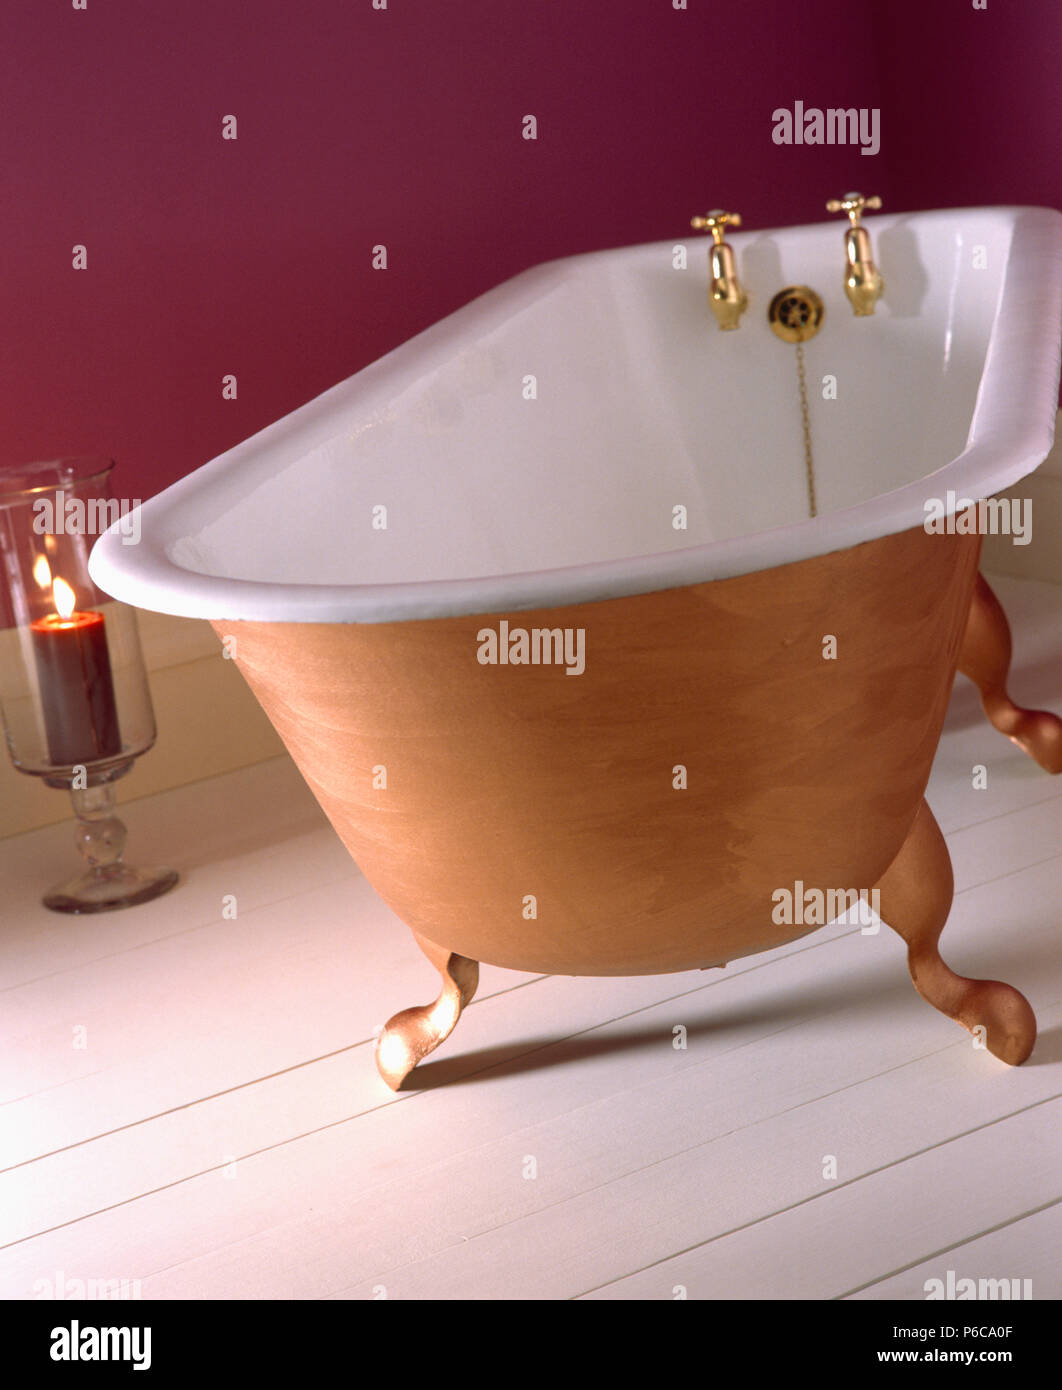 Close-up of claw-foot bath with brass taps Stock Photo: 210483631 ...